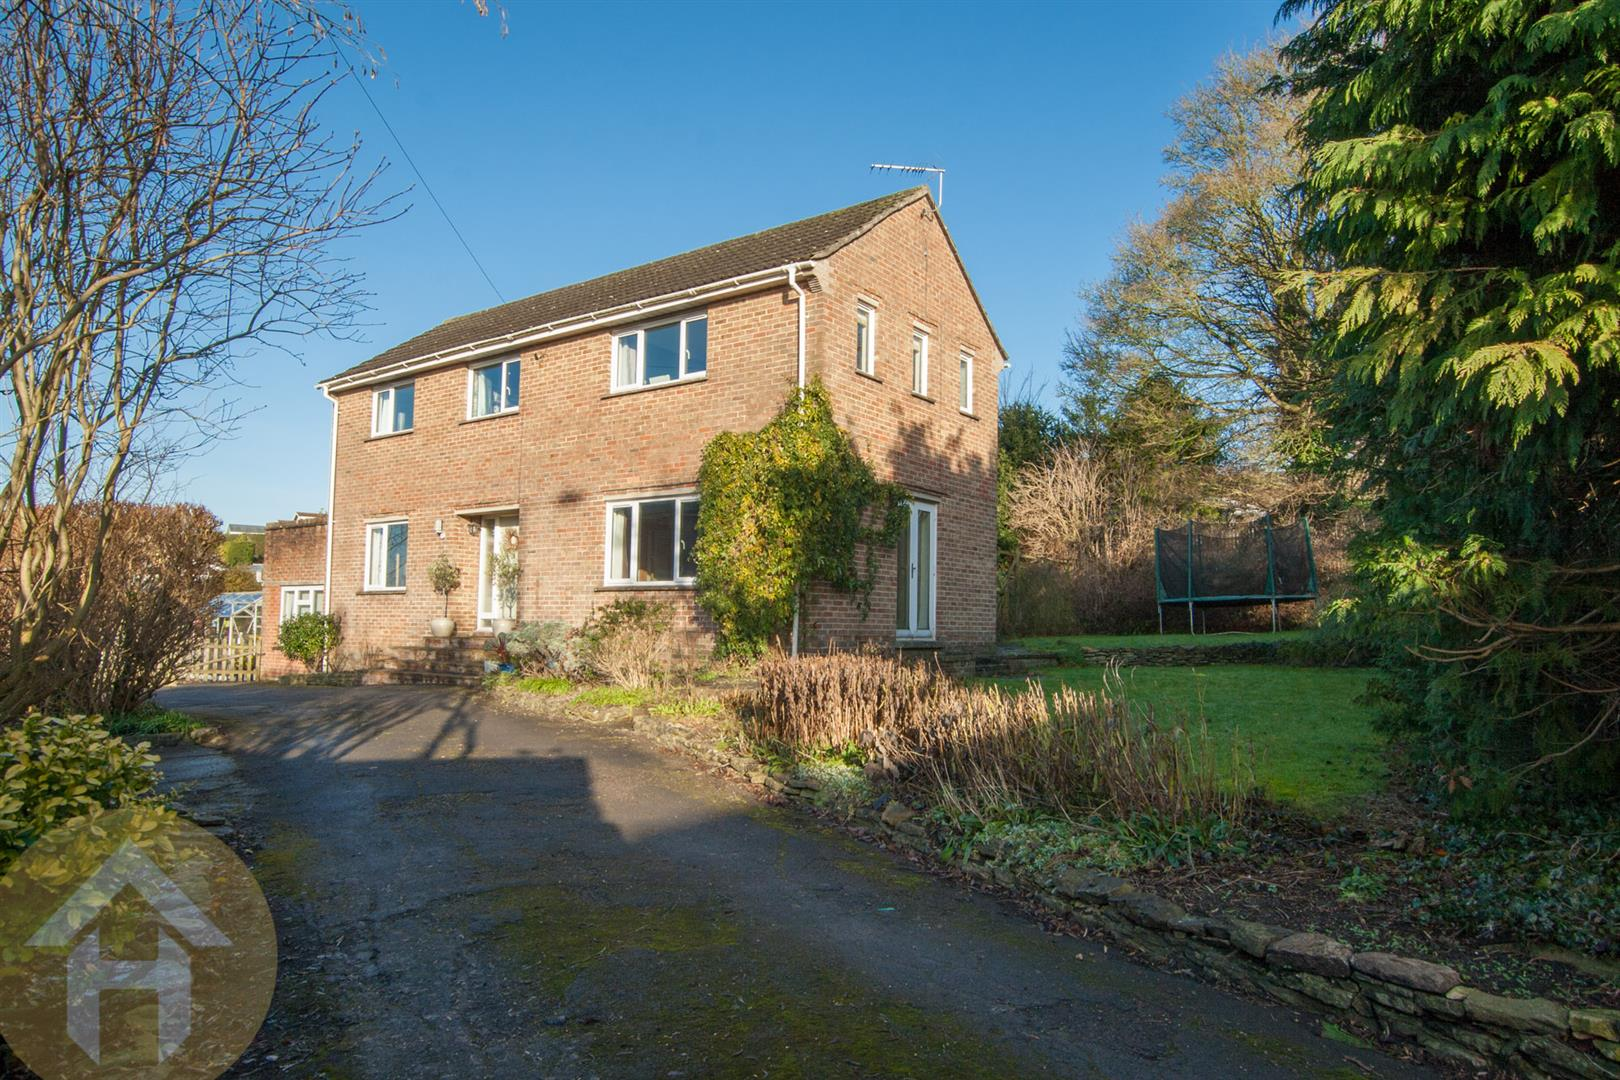 4 Bedrooms Detached House for sale in High Street, Royal Wootton Bassett. SN4